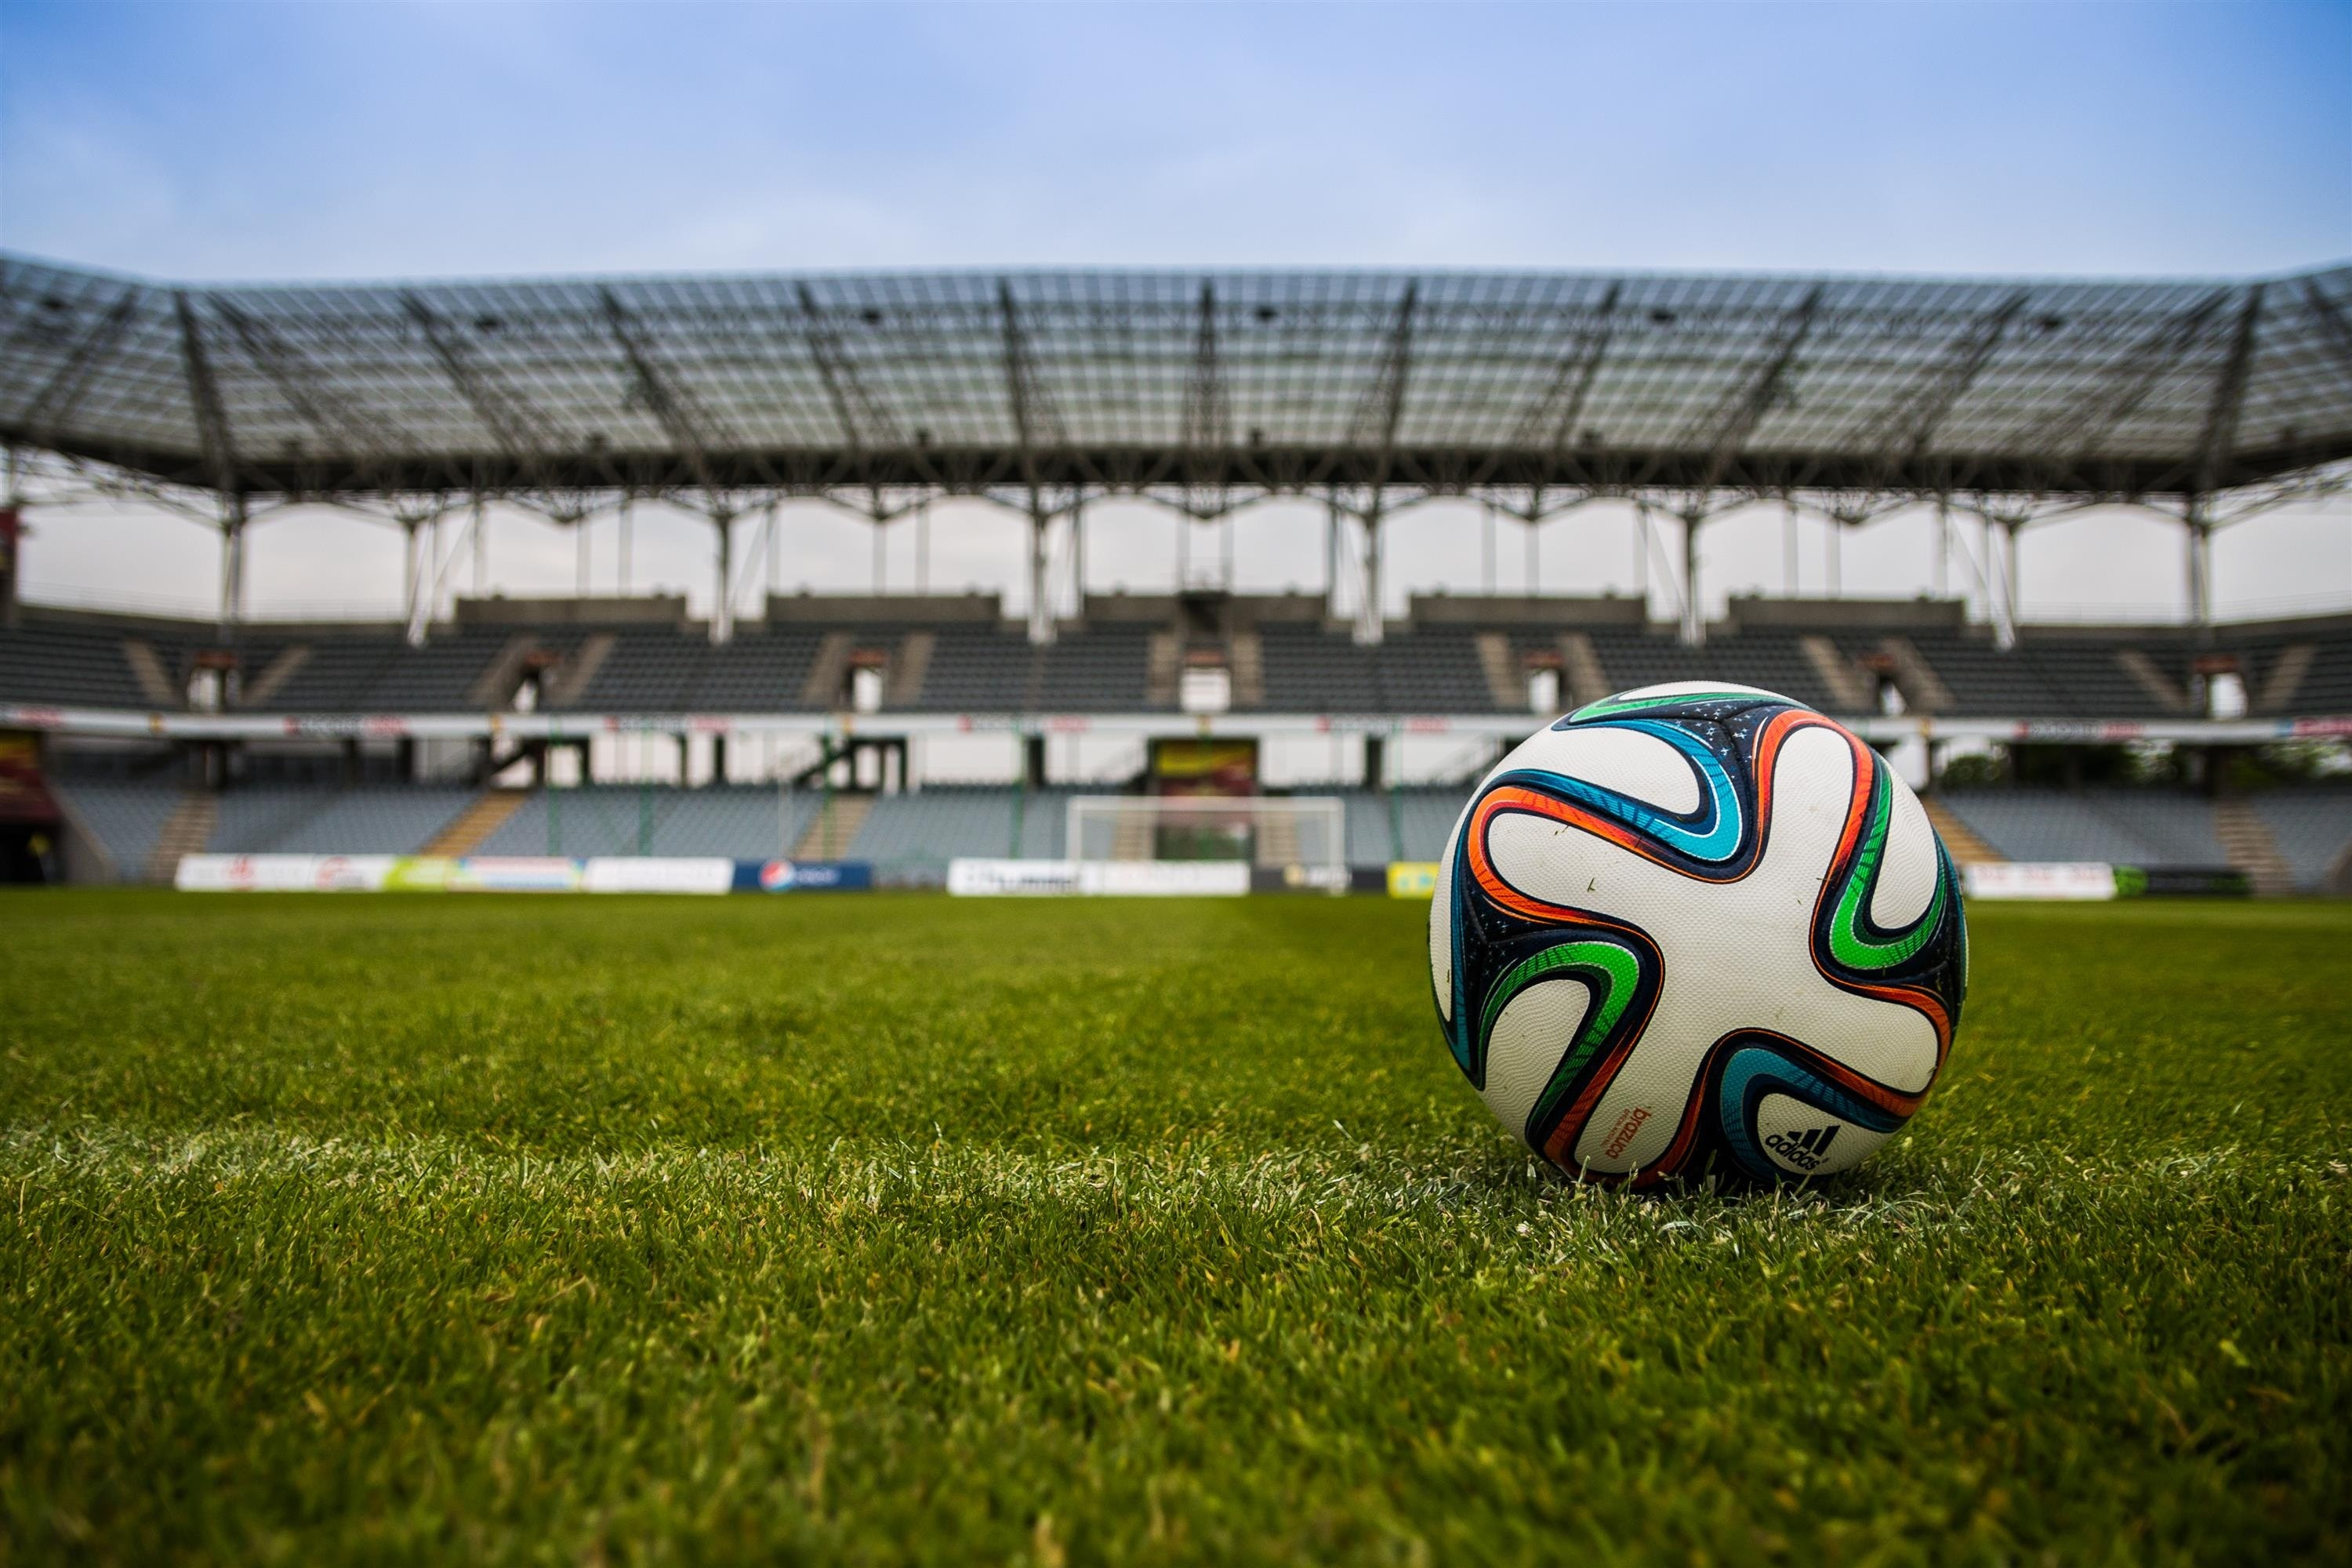 Soccer Ball on Grass Field during Daytime